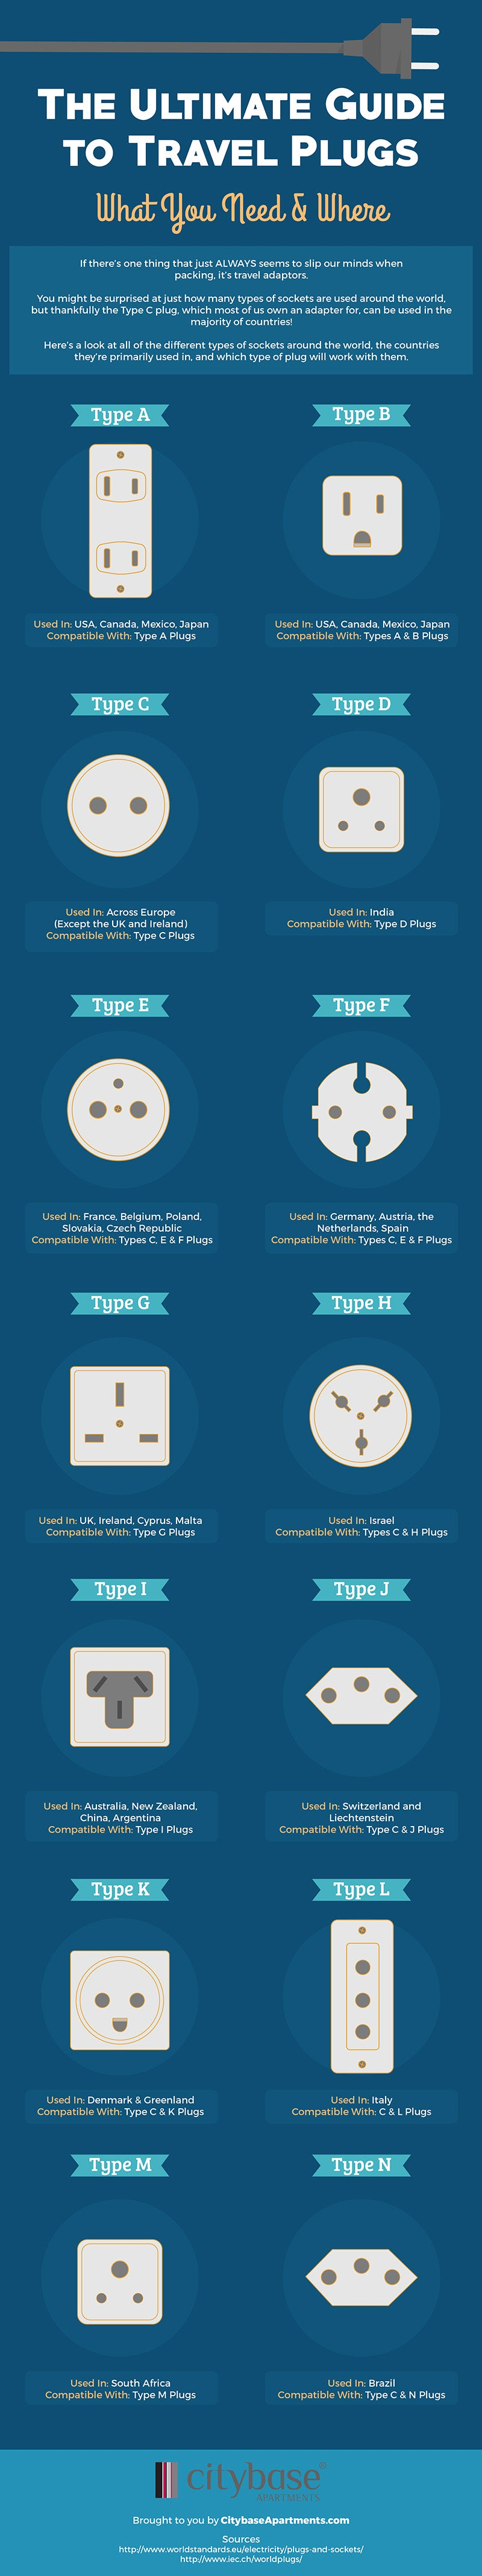 Common Plug Types, and the Countries Where They're Used, In One Graphic